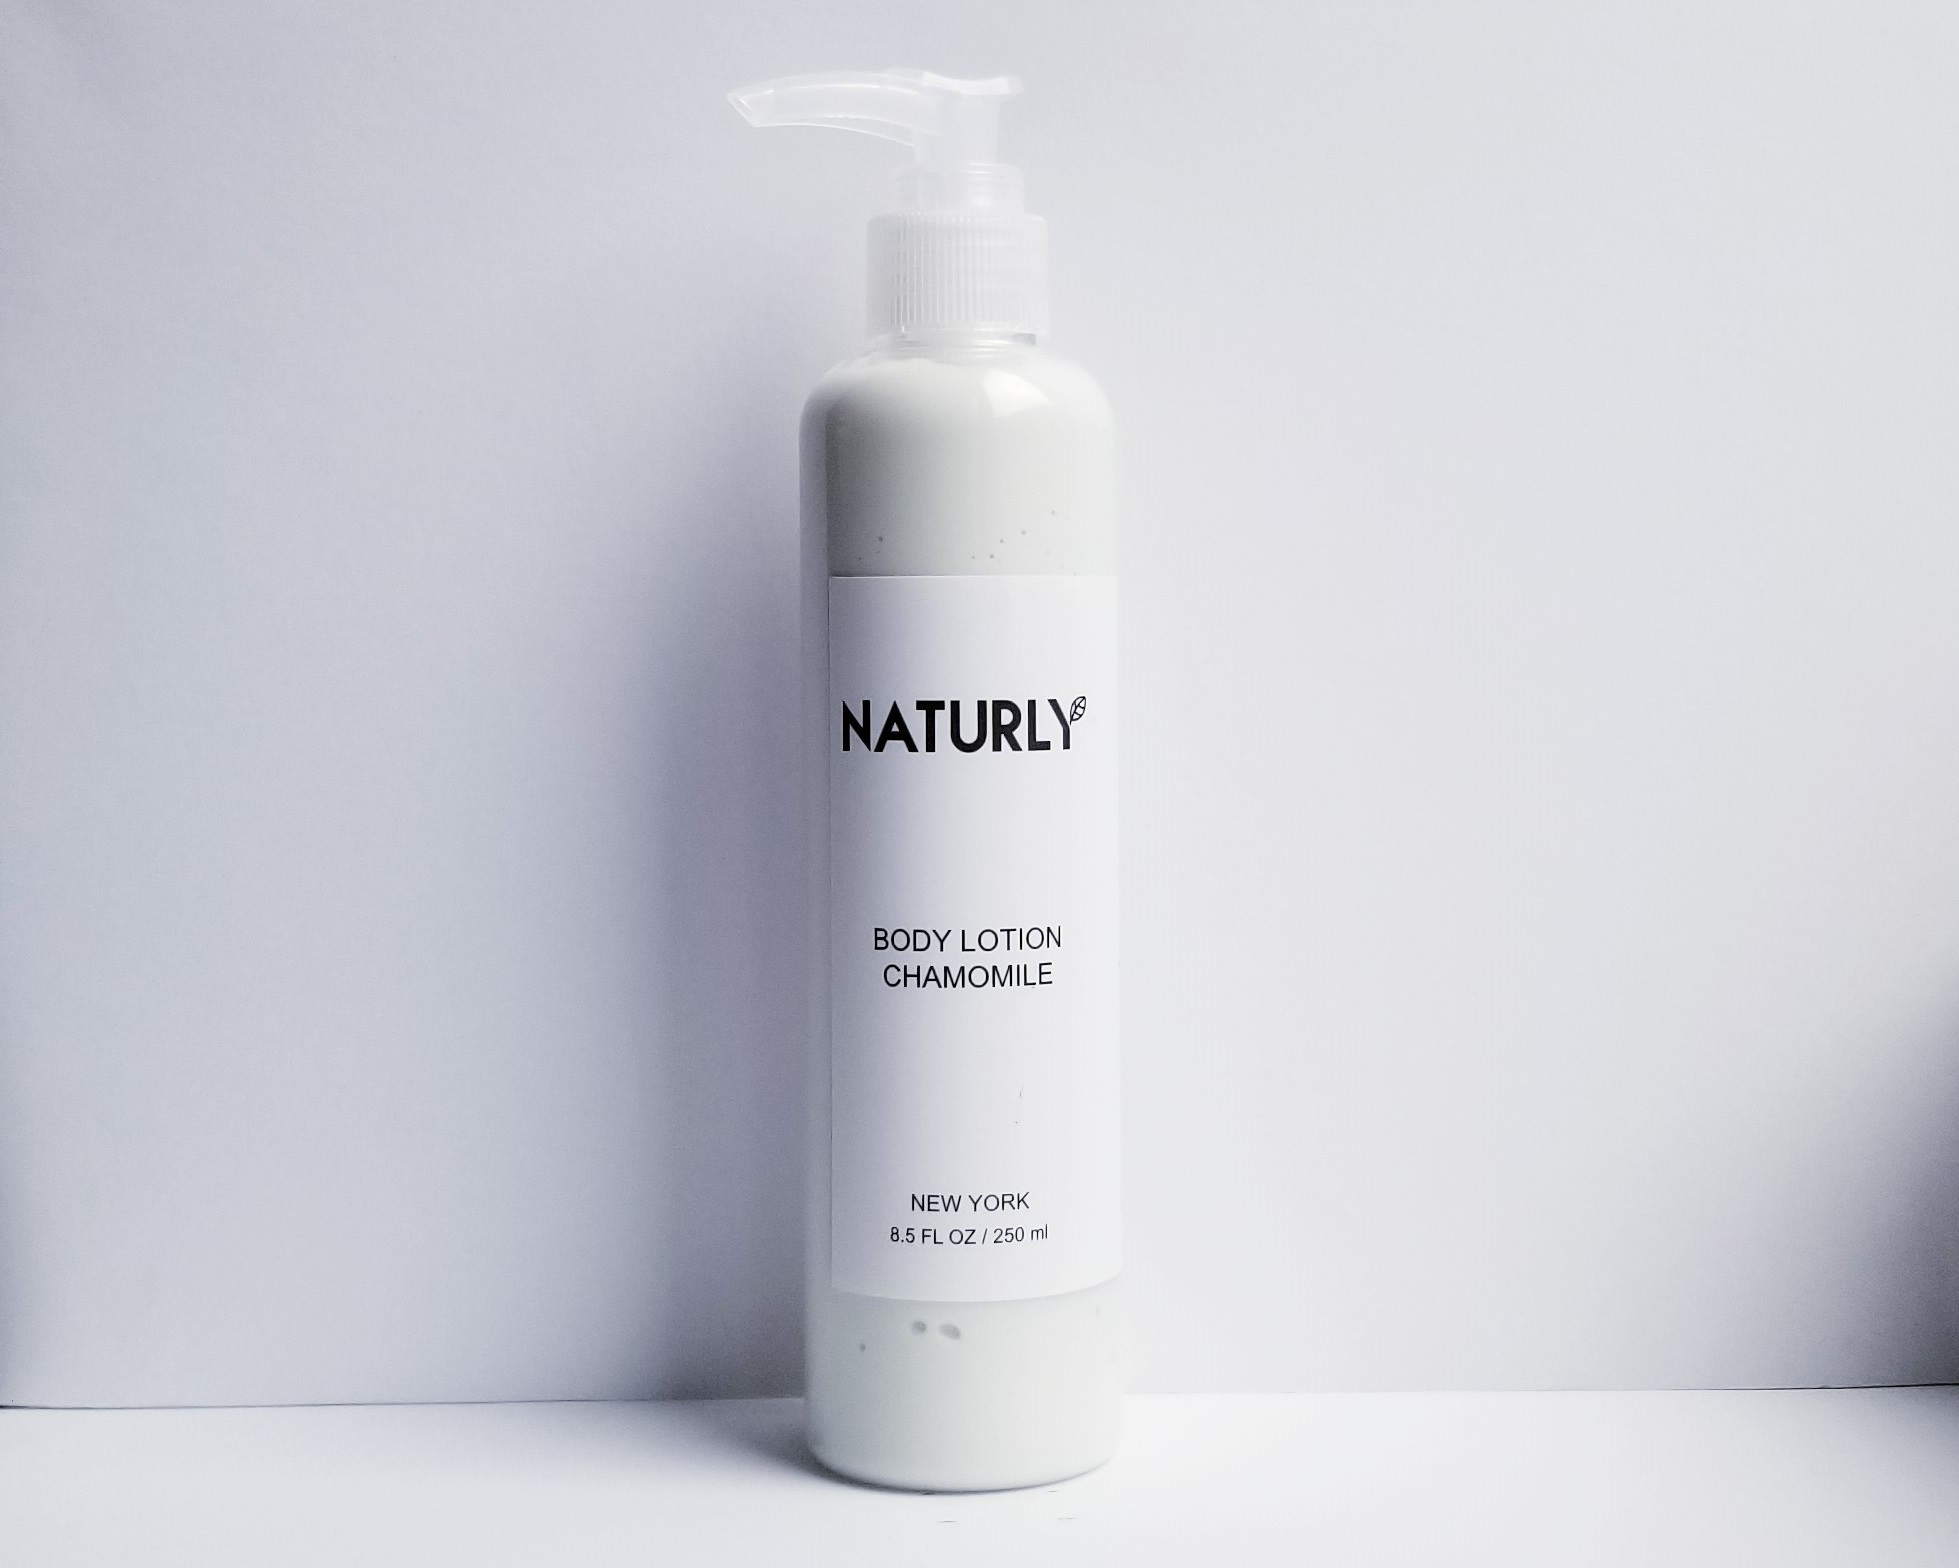 Body Lotion with shea butter, coconut emollient, chamomile & lavendar oils, anti-oxidant chlorophyl extract - $28